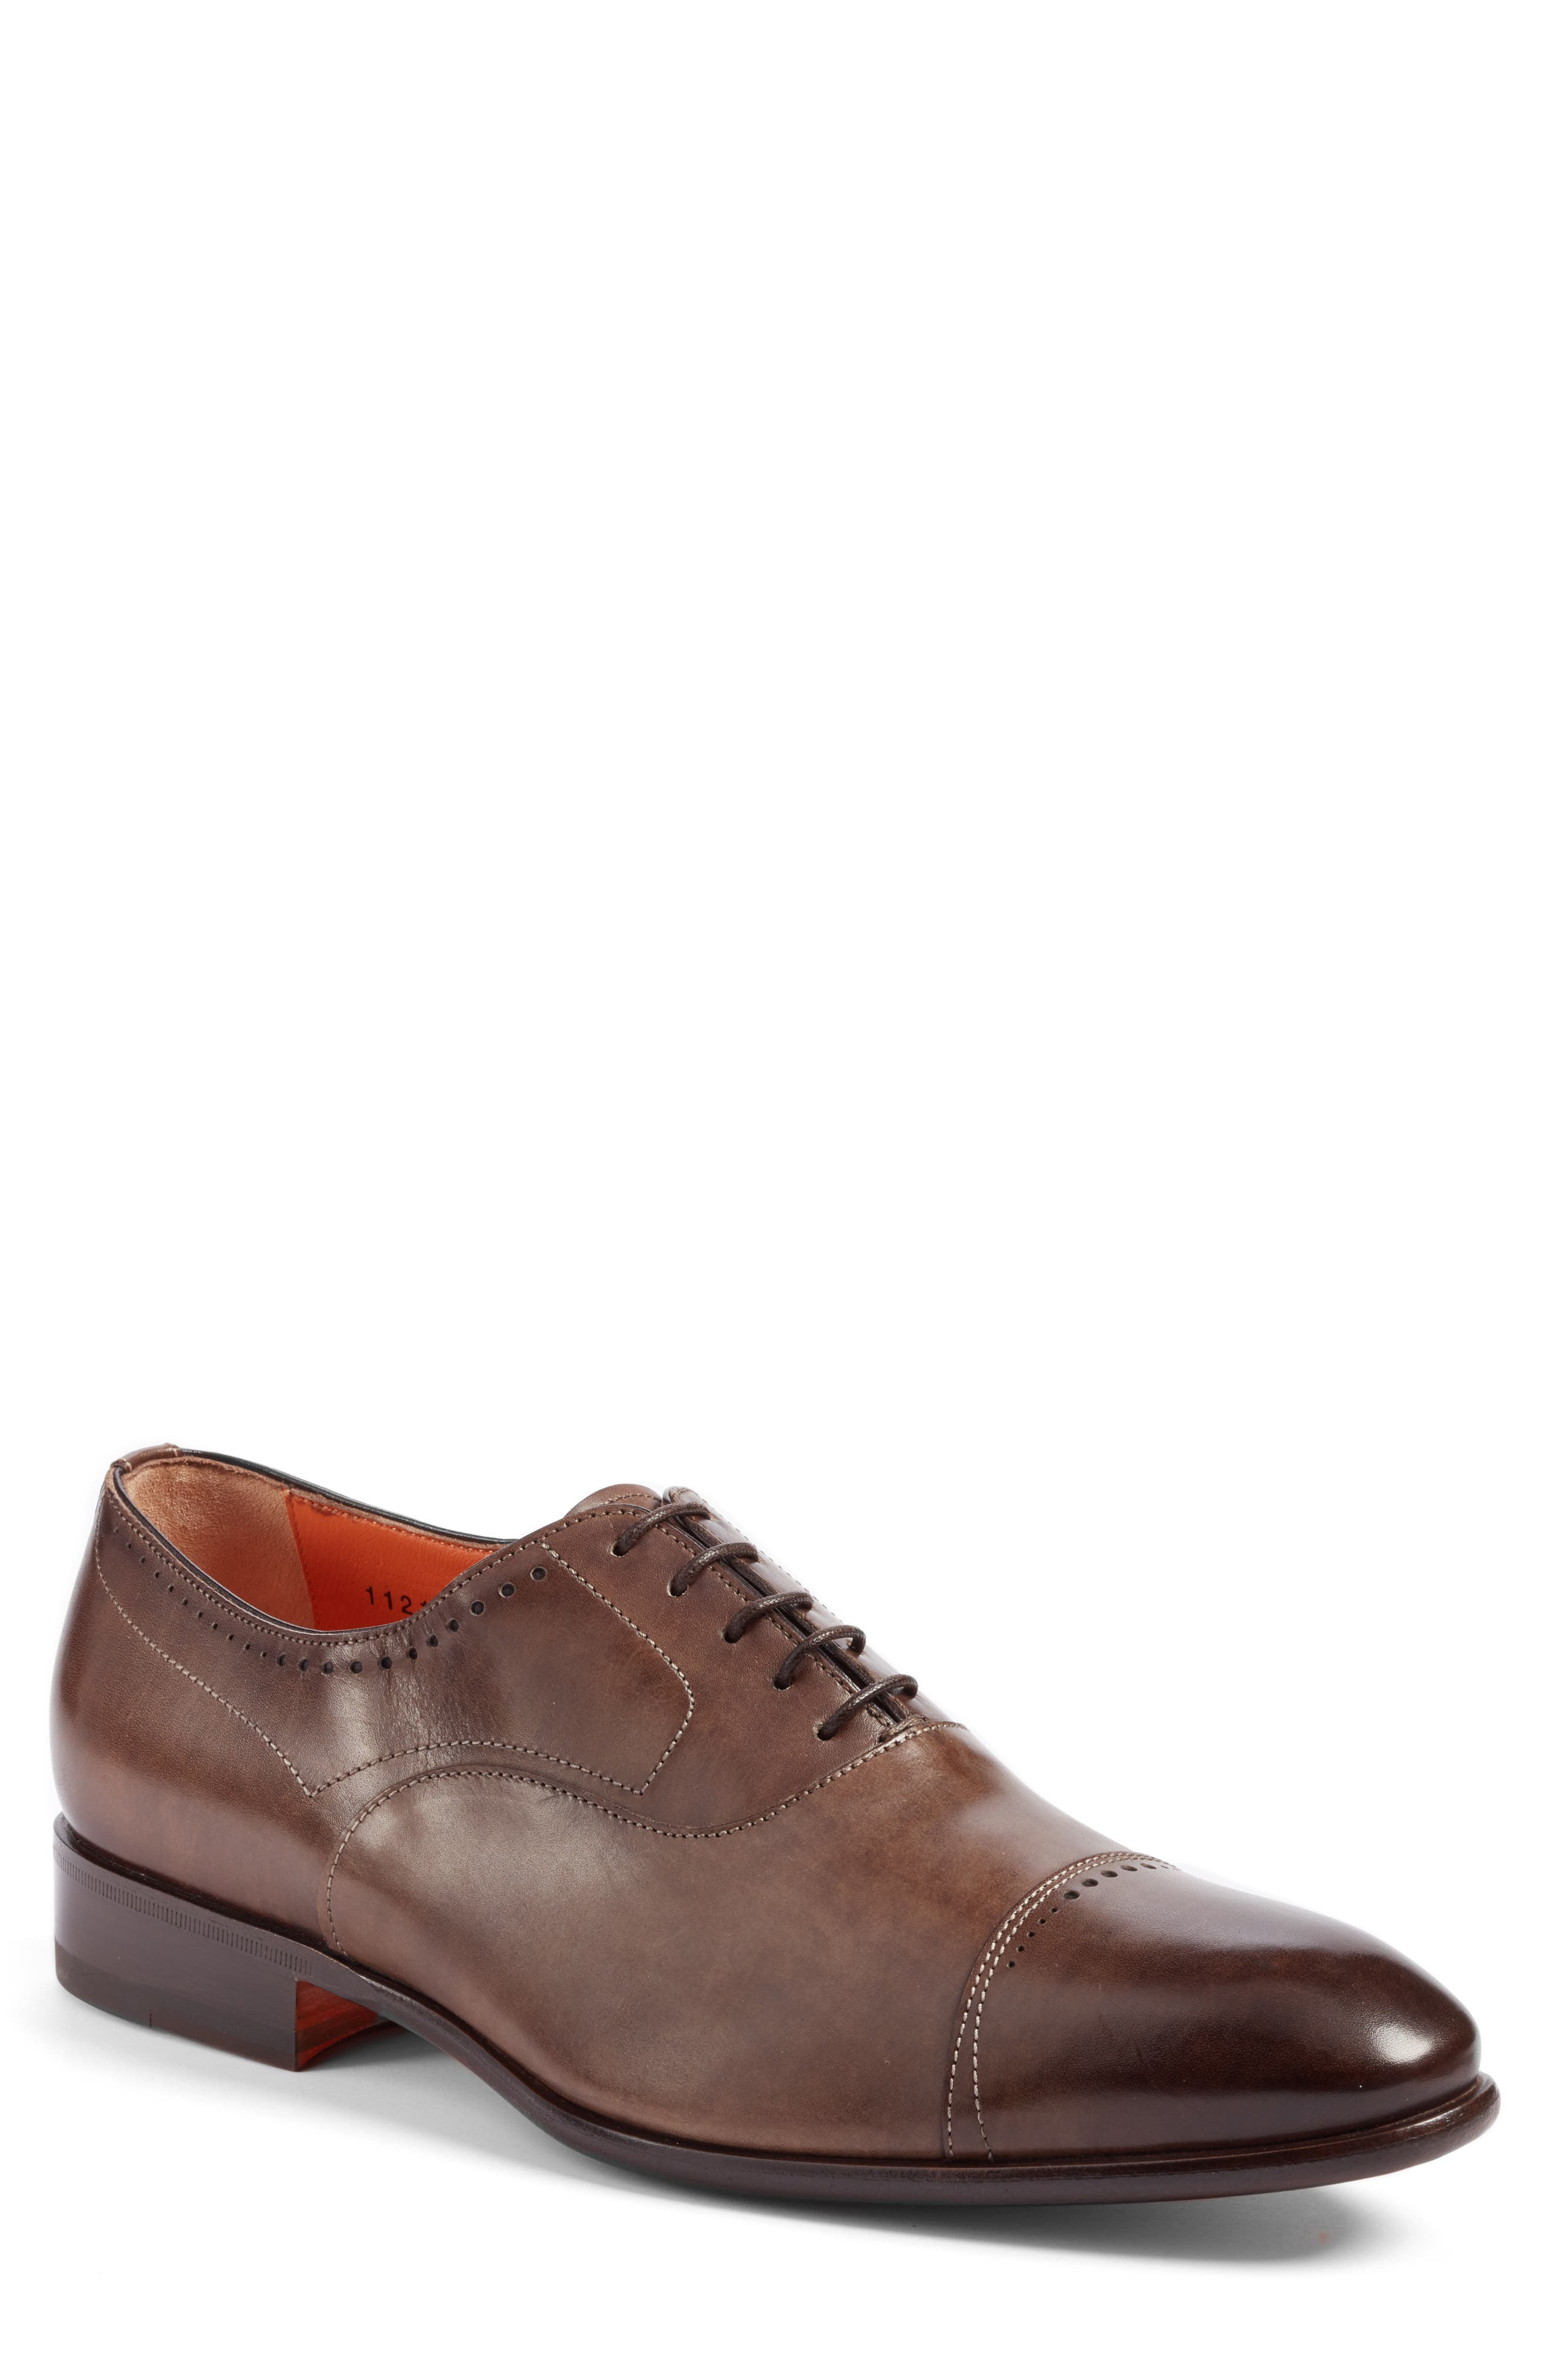 Thurman Cap Toe Oxford,                         Main,                         color,